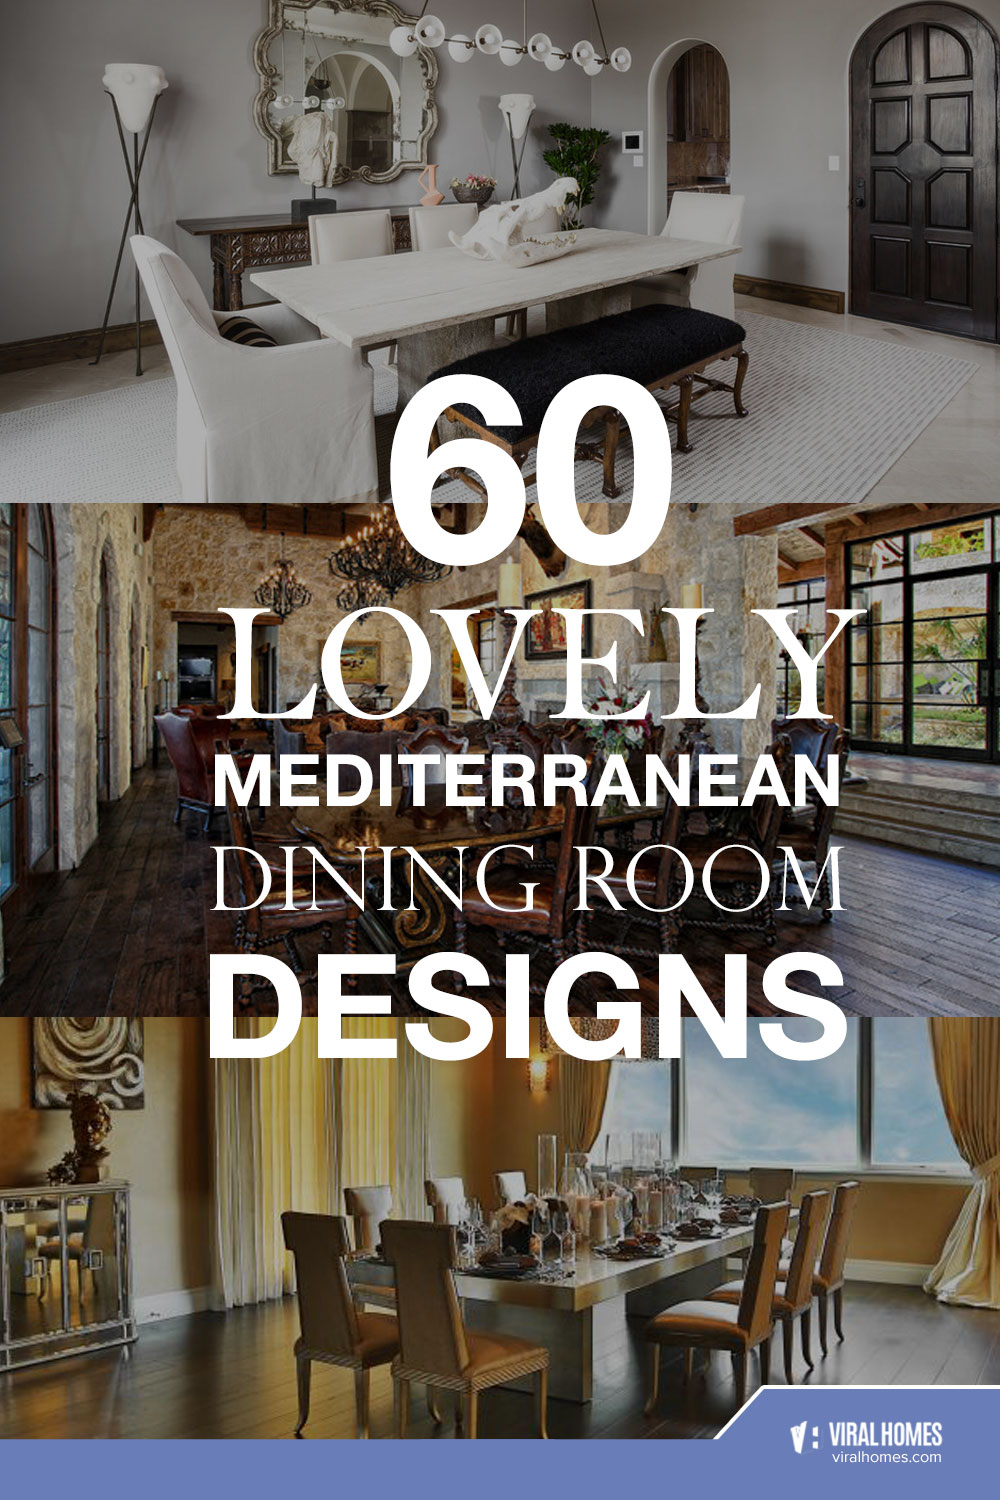 Amazing Mediterranean Dining Room Designs That Never Go Out Of Style